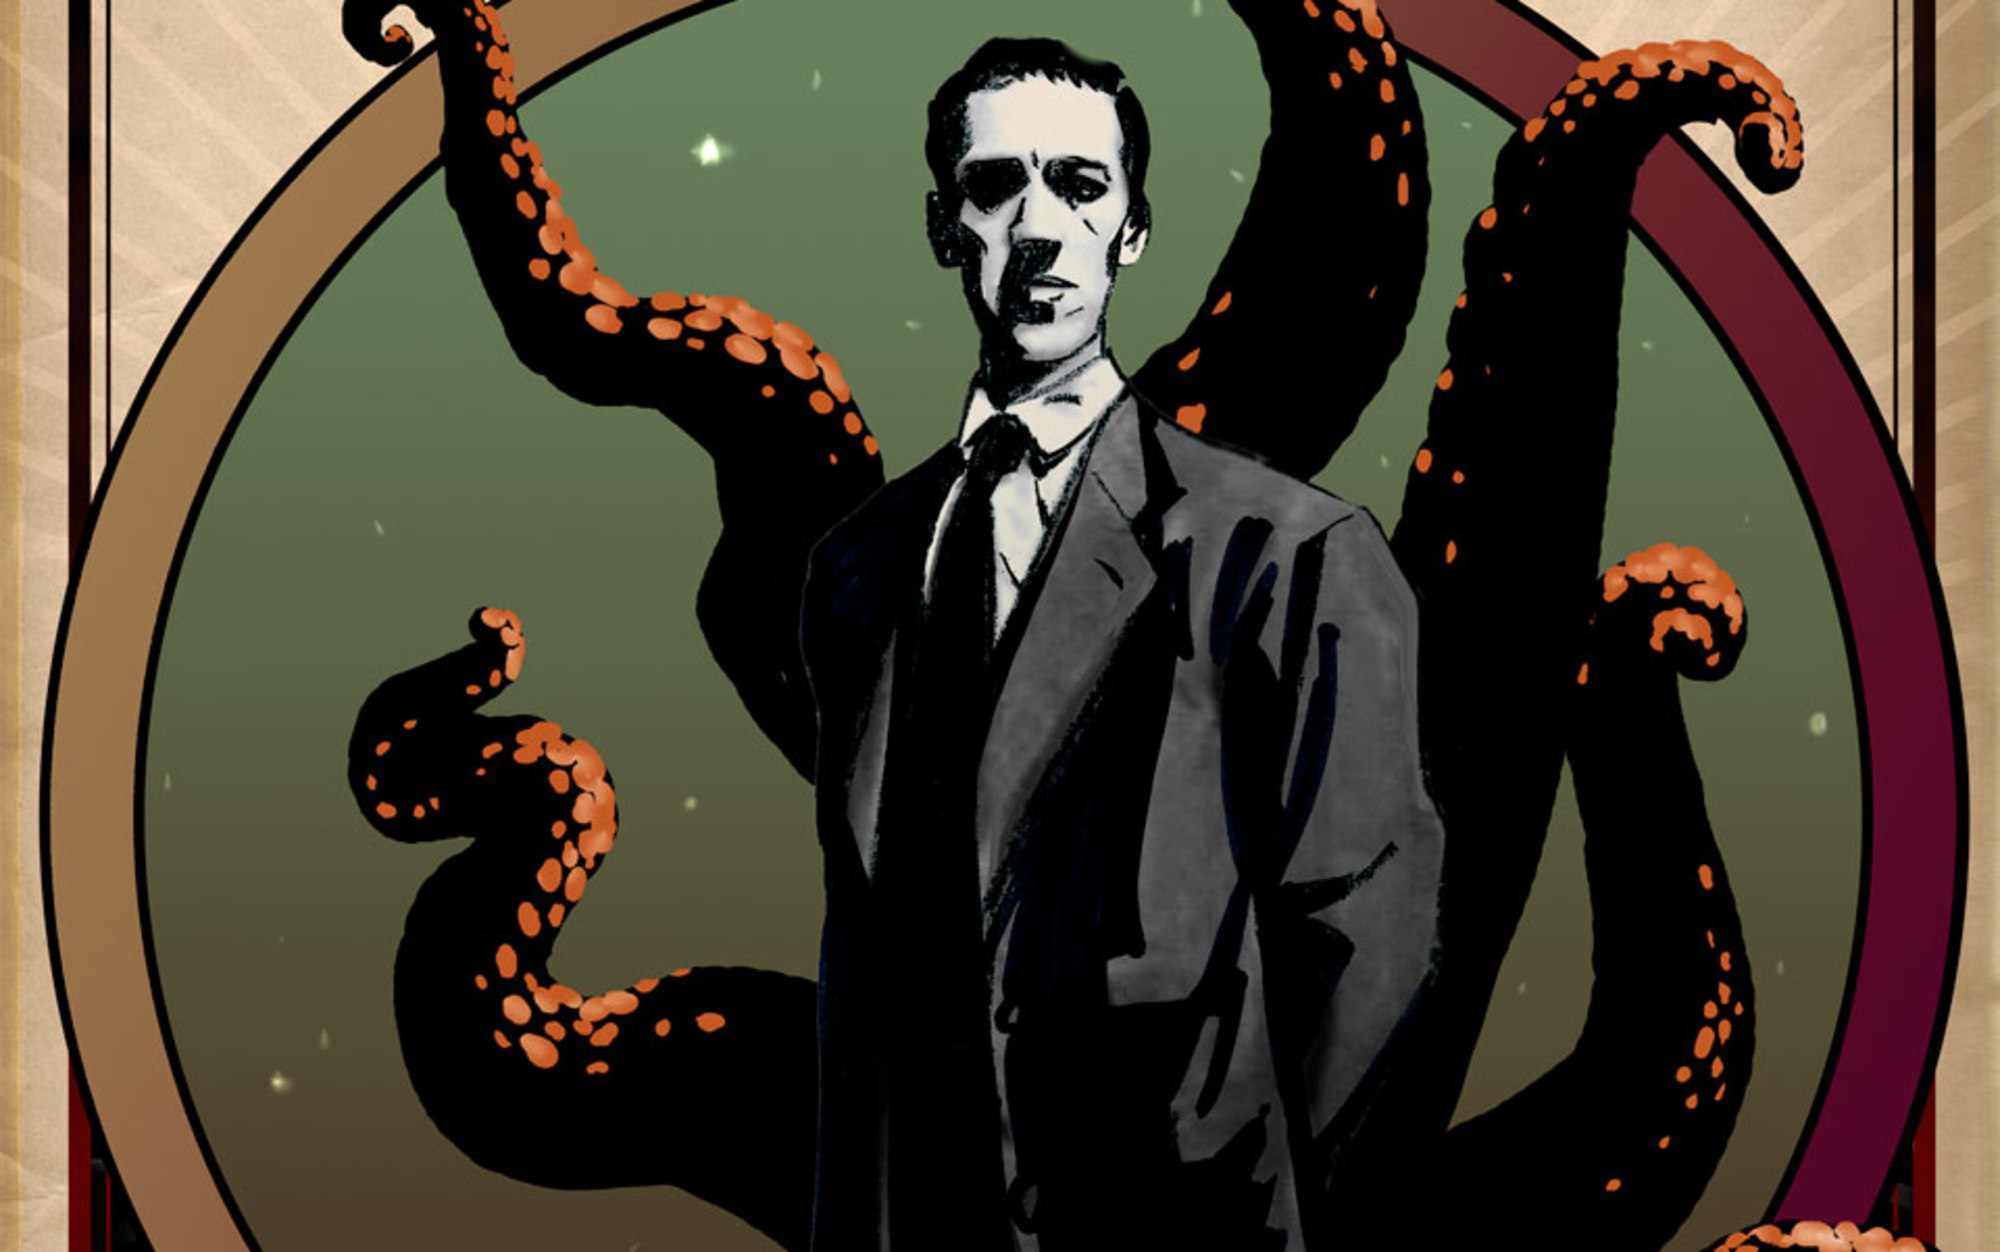 Header hp lovecraft by lee moyer